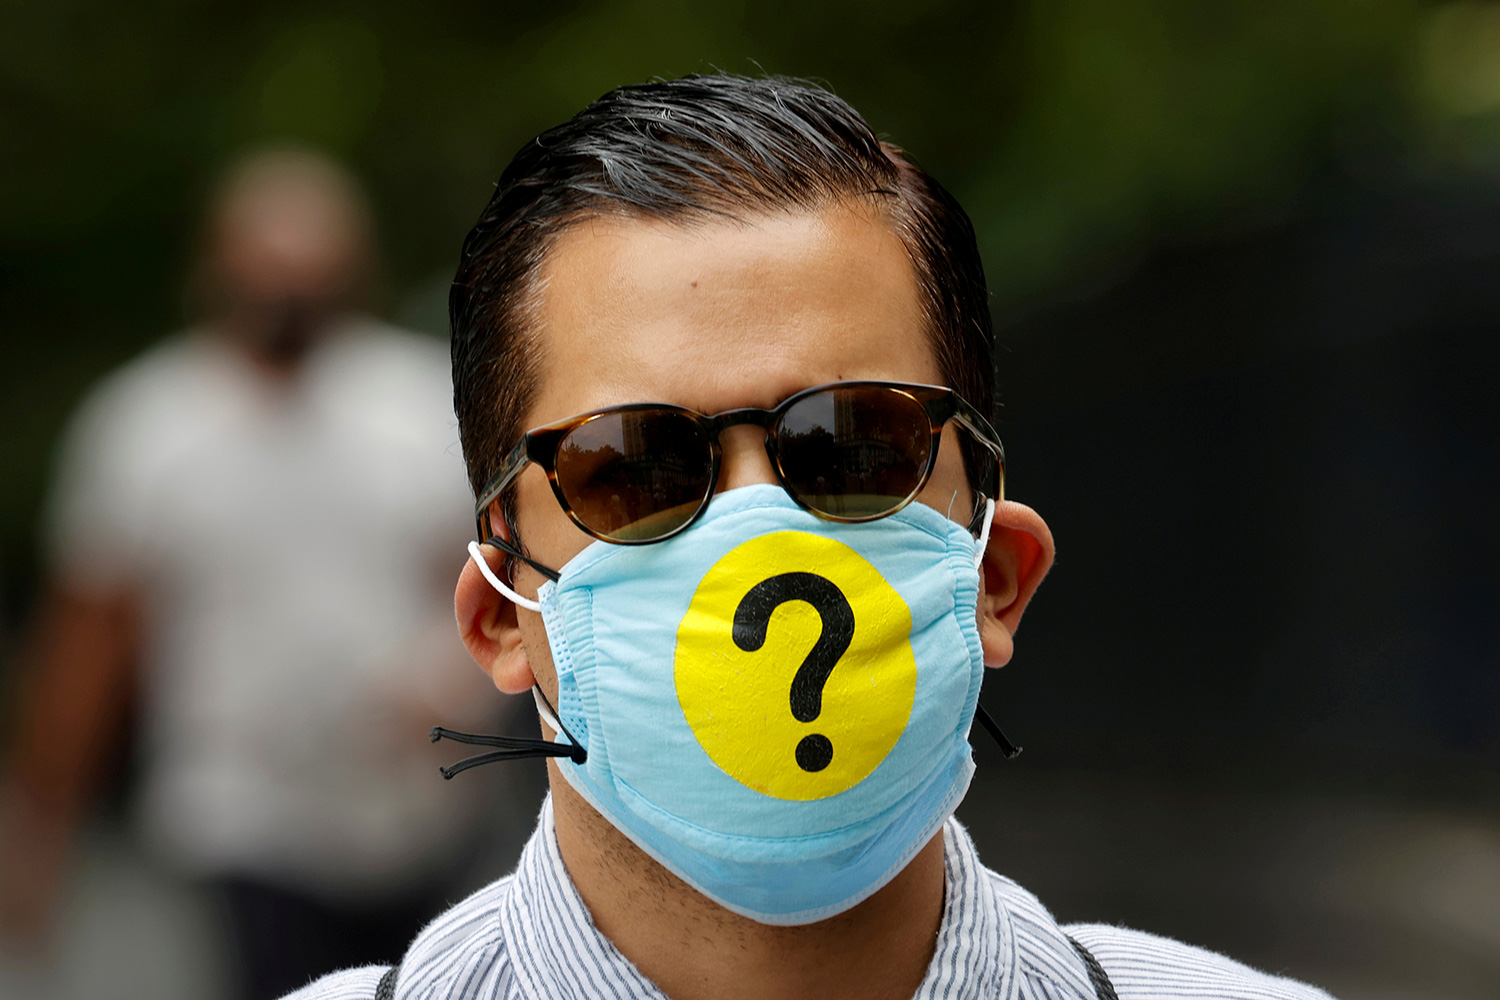 A man wears a protective facemask decorated with a question mark in lower Manhattan during the outbreak of the coronavirus disease (COVID-19) in New York, U.S., May 22, 2020. Picture shows a well groomed man who appears to be in his 30s wearing a mask adorned with a huge question mark. REUTERS/Mike Segar